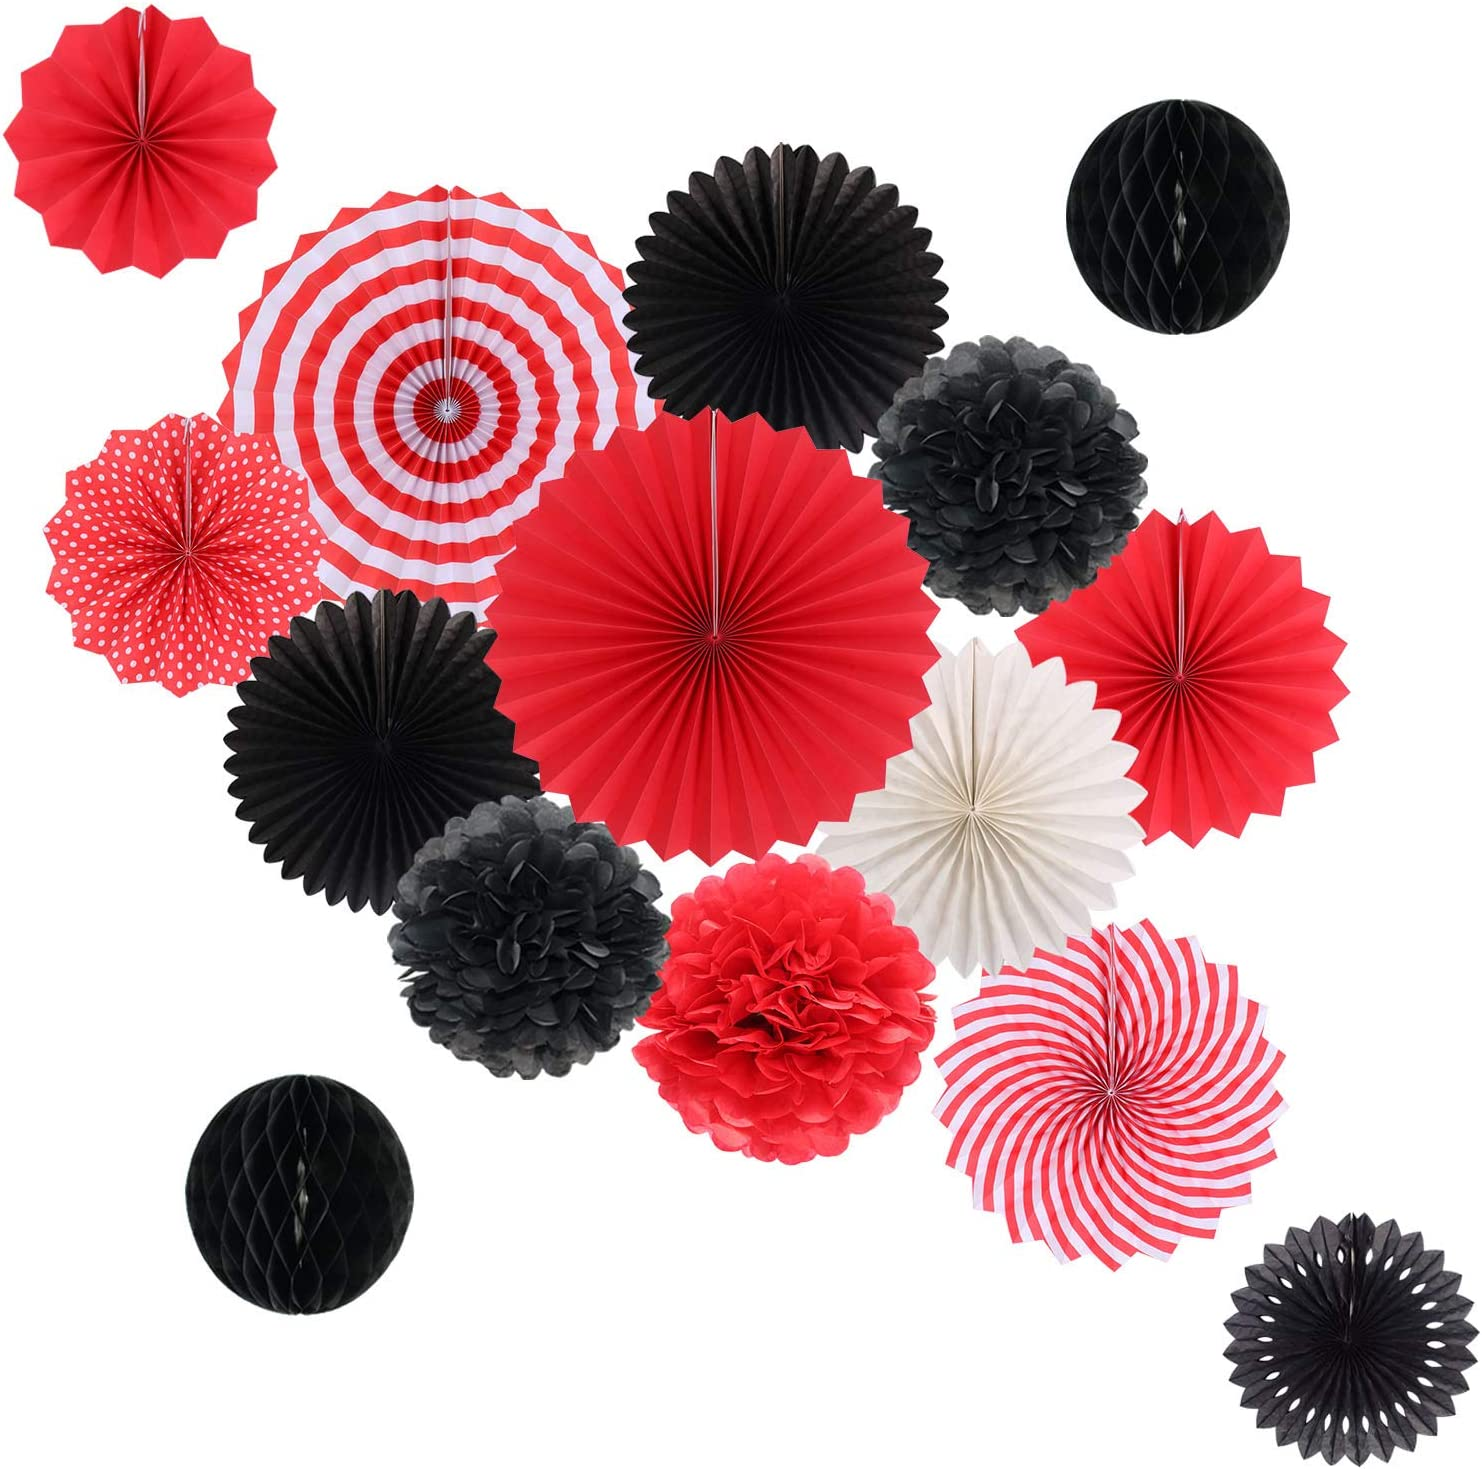 Hanging Party Decorations Set Tissue Paper Fans Paper Pom Poms Flowers and Honeycomb Ball for Wedding Birthday Bachelorette Graduation Party Decor Black Red Kit